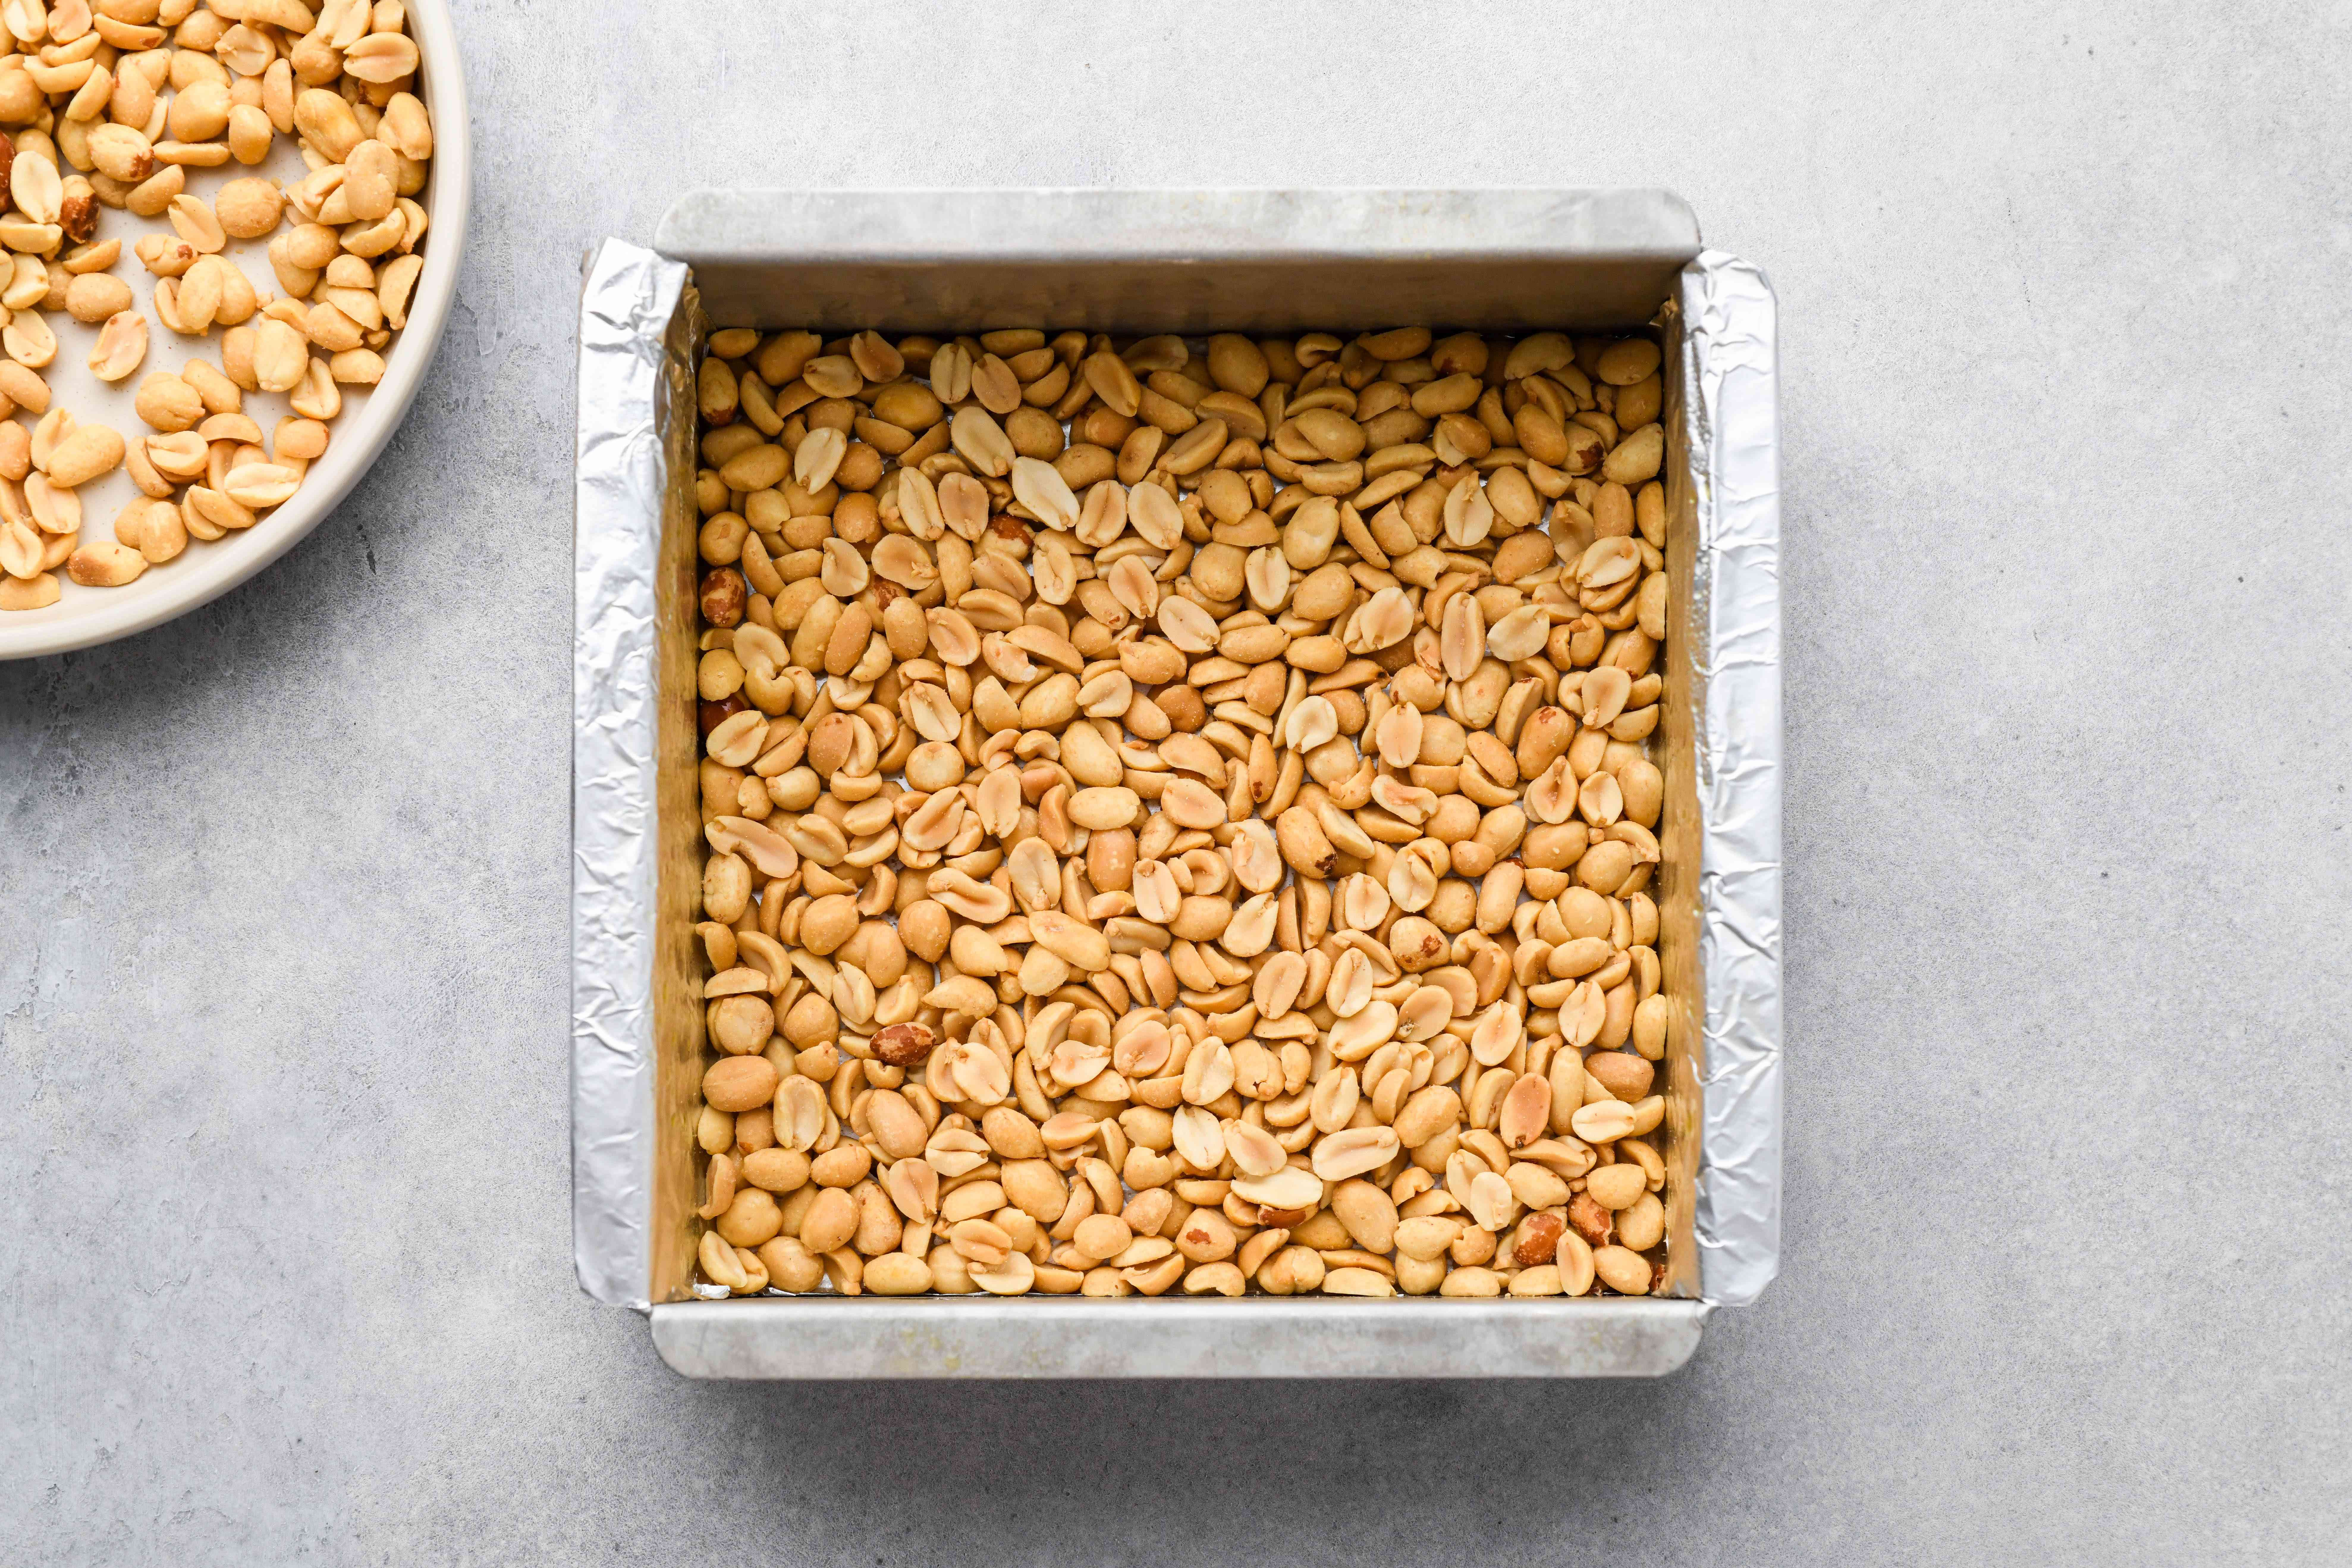 peanuts on in a baking pan